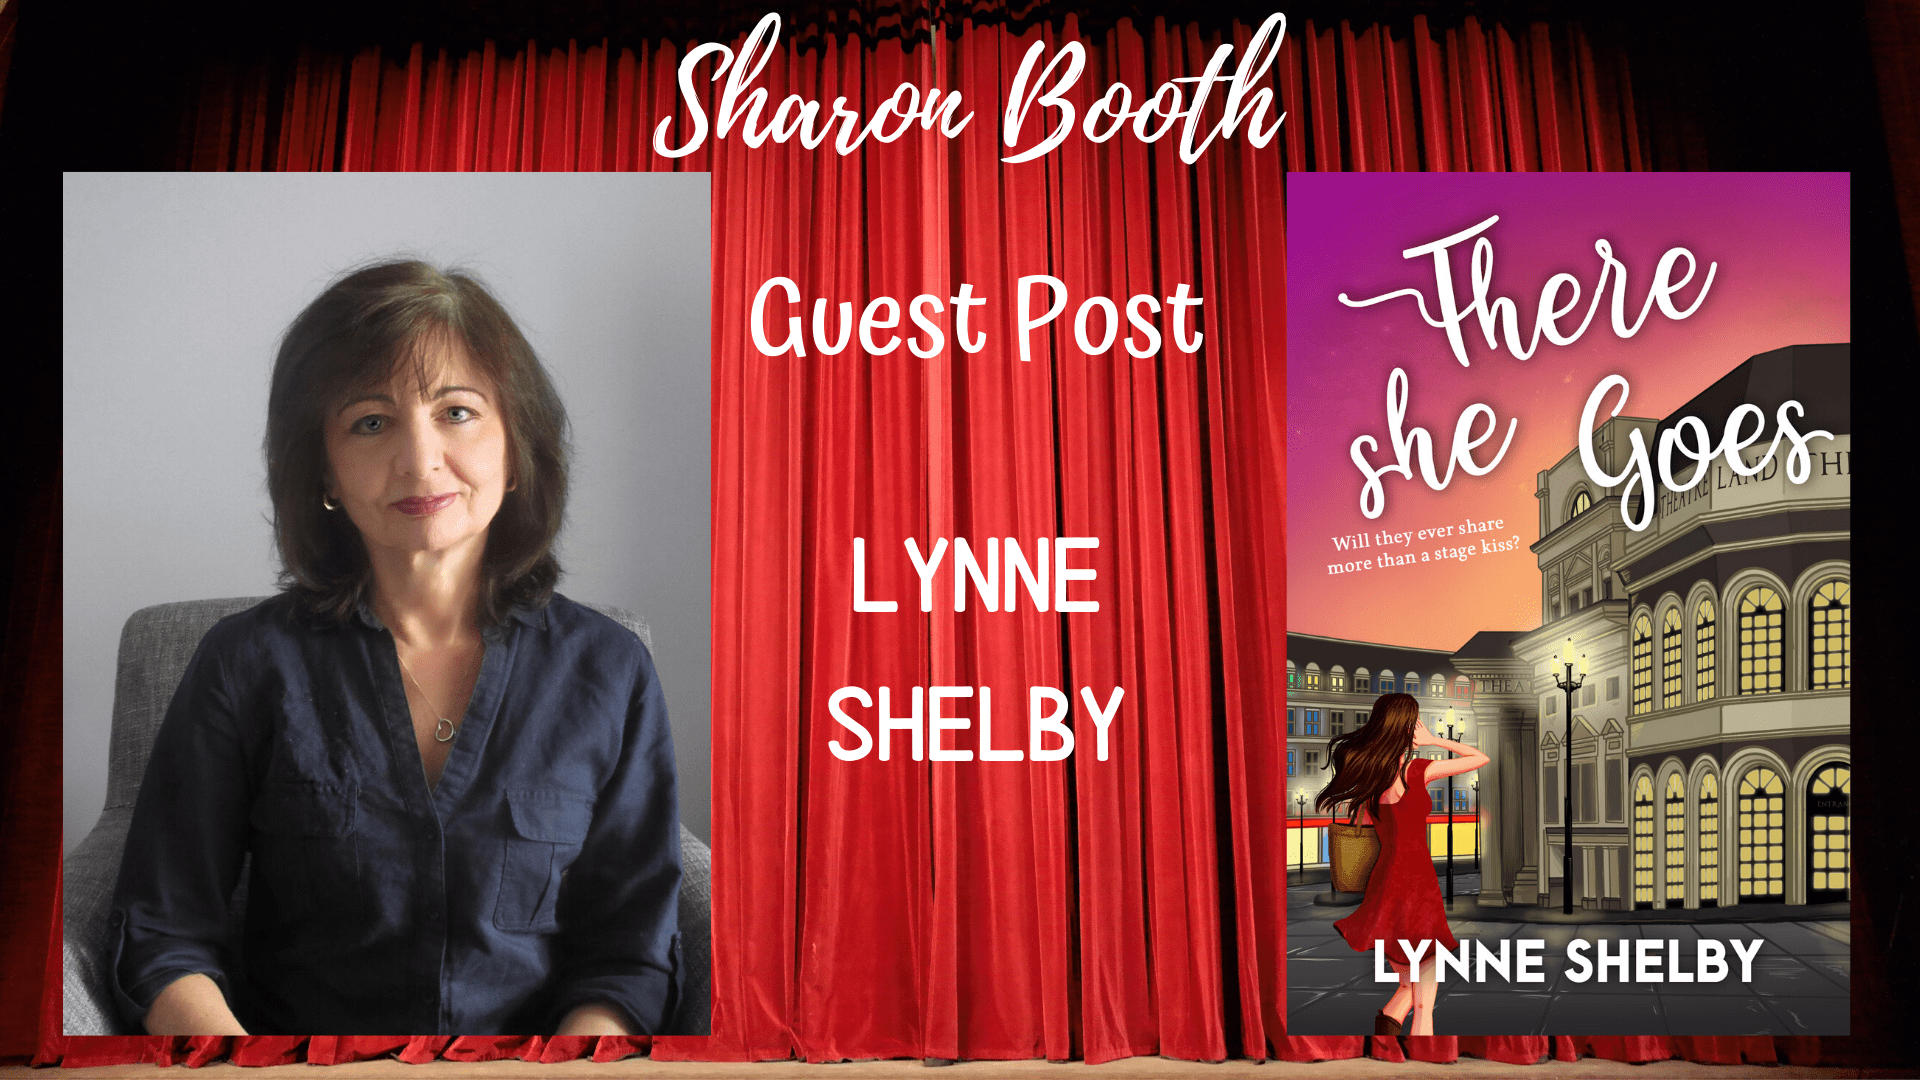 Where I Write by Lynne Shelby